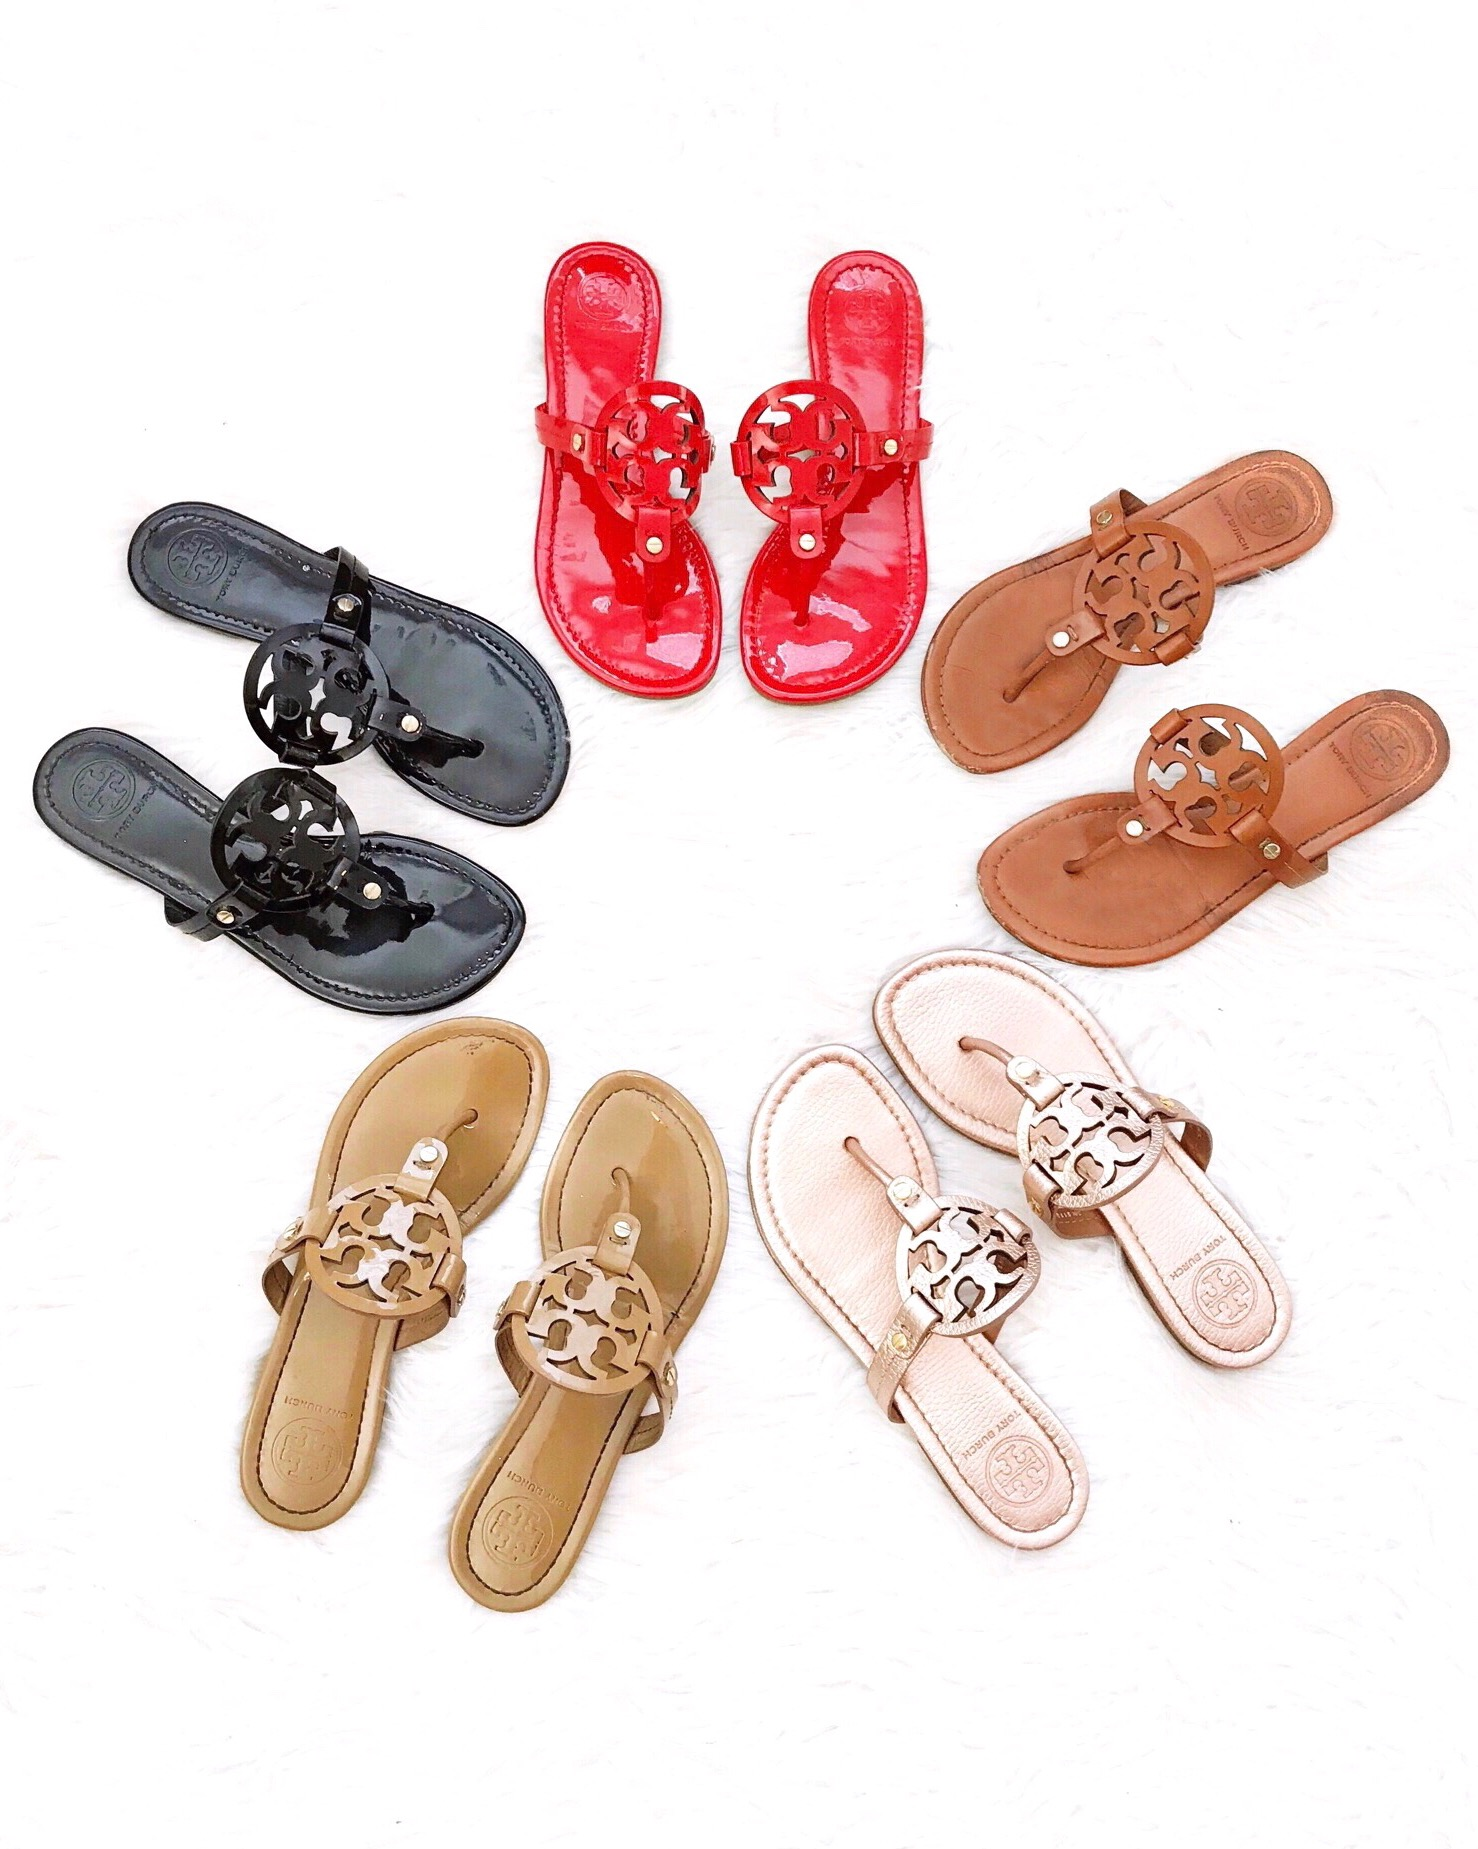 adc8db0547e1 Tory Burch Miller Sandals  50 off (Most colors included ...